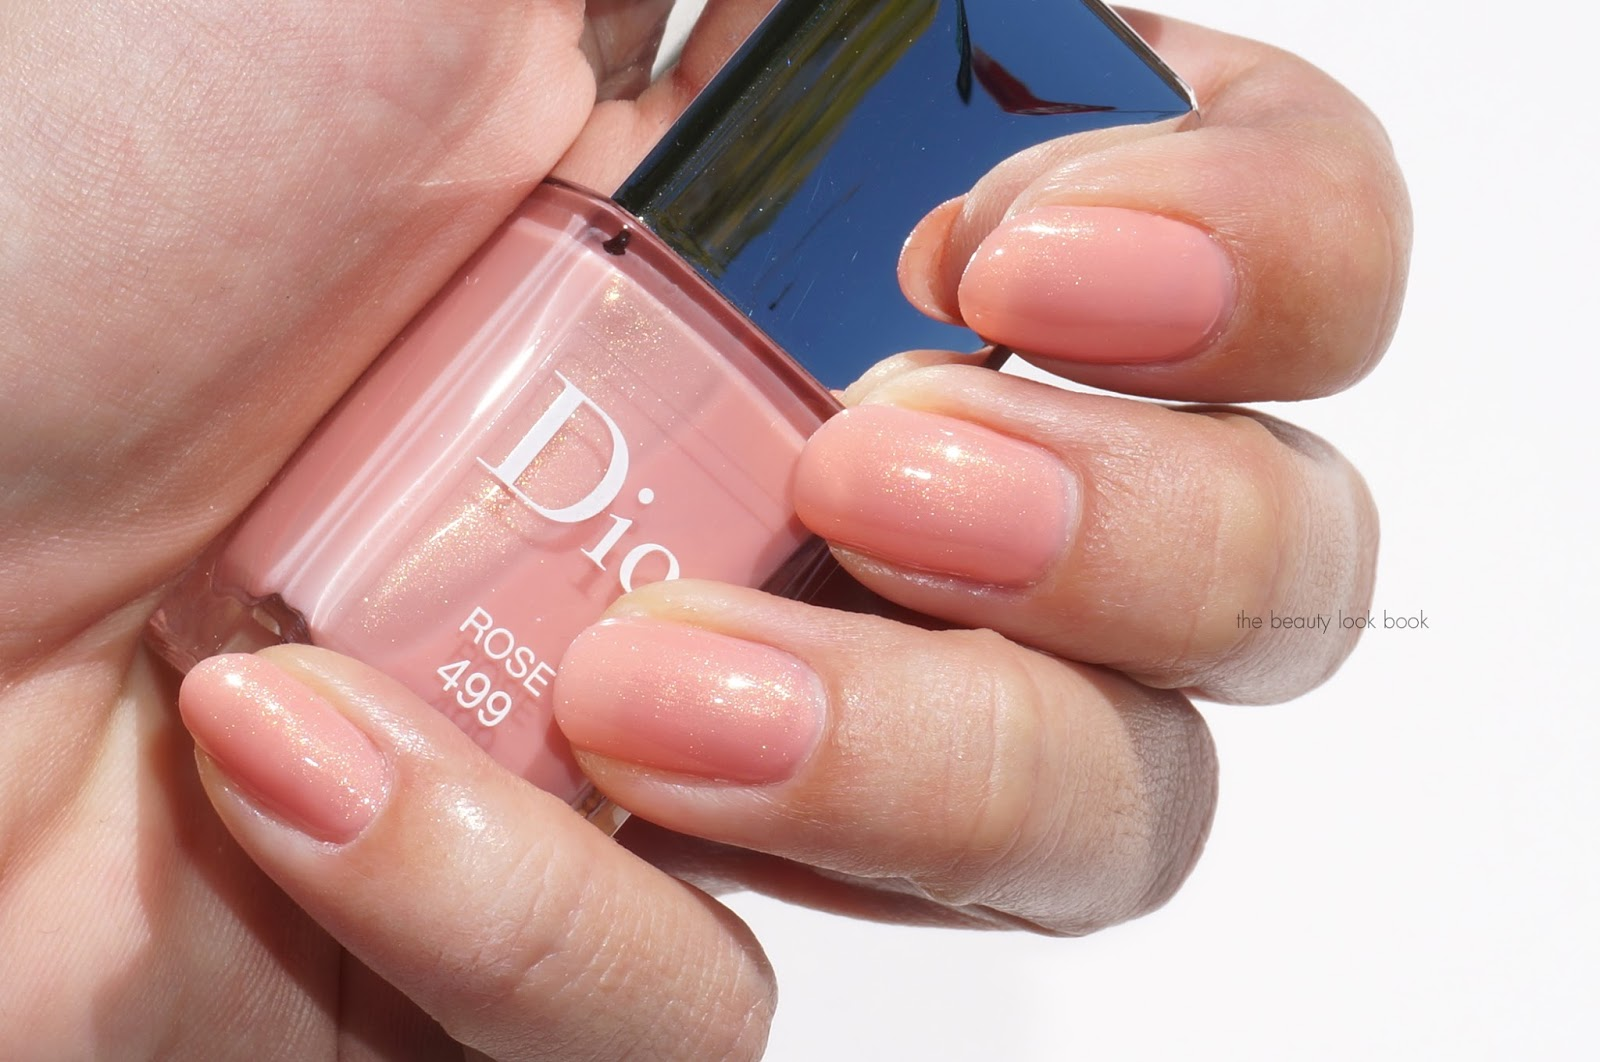 Dior Vernis in Rose 499, Pink 599 and Corail 899 | The Beauty Look Book